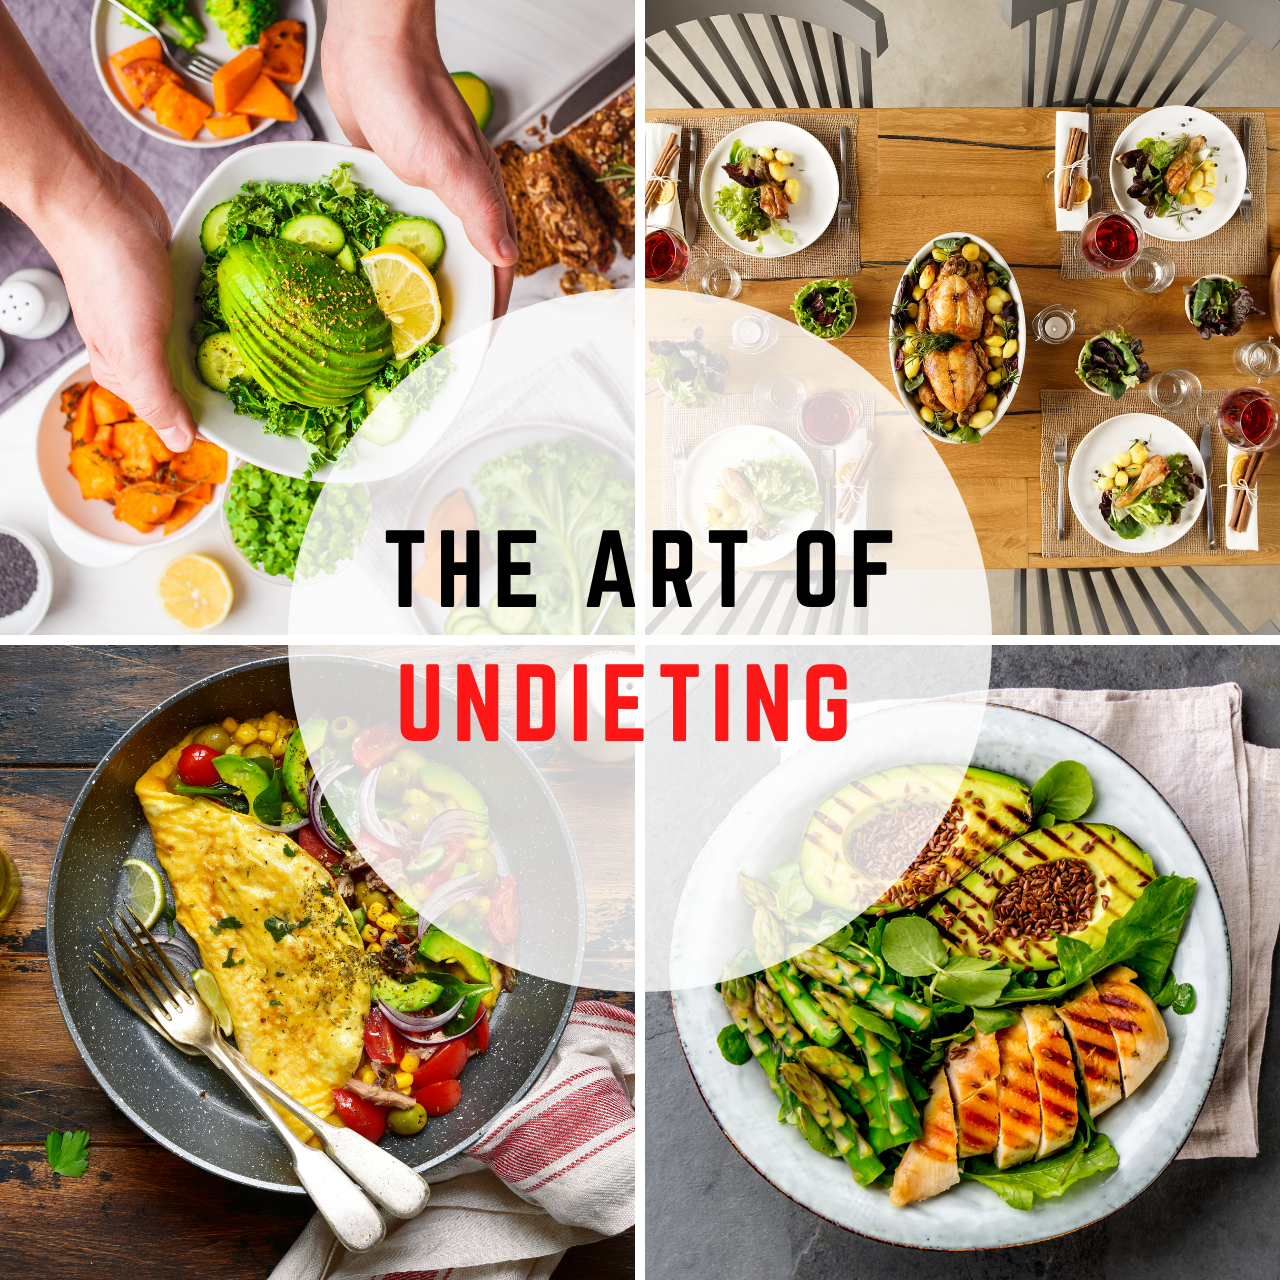 THE ART OF UNDIETING